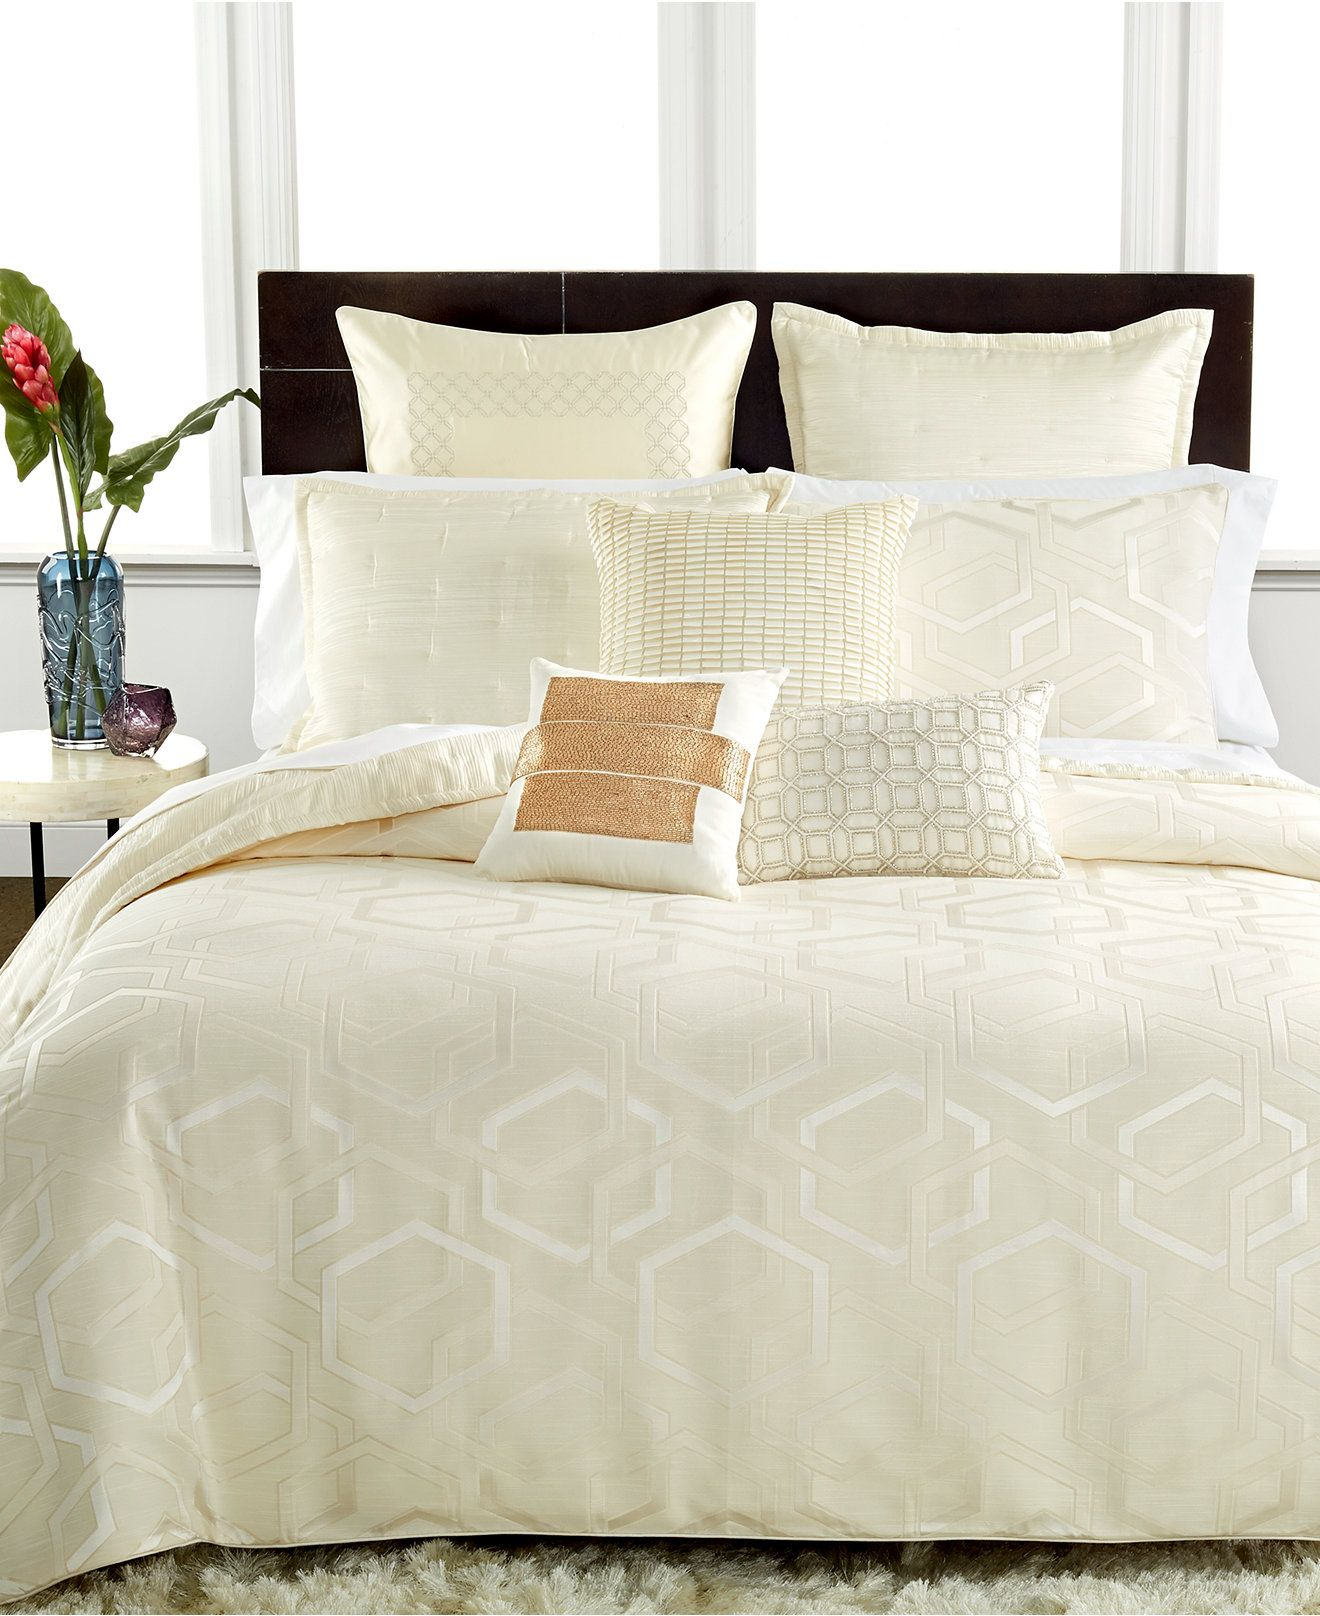 Hotel Collection Verve Bedding Collection